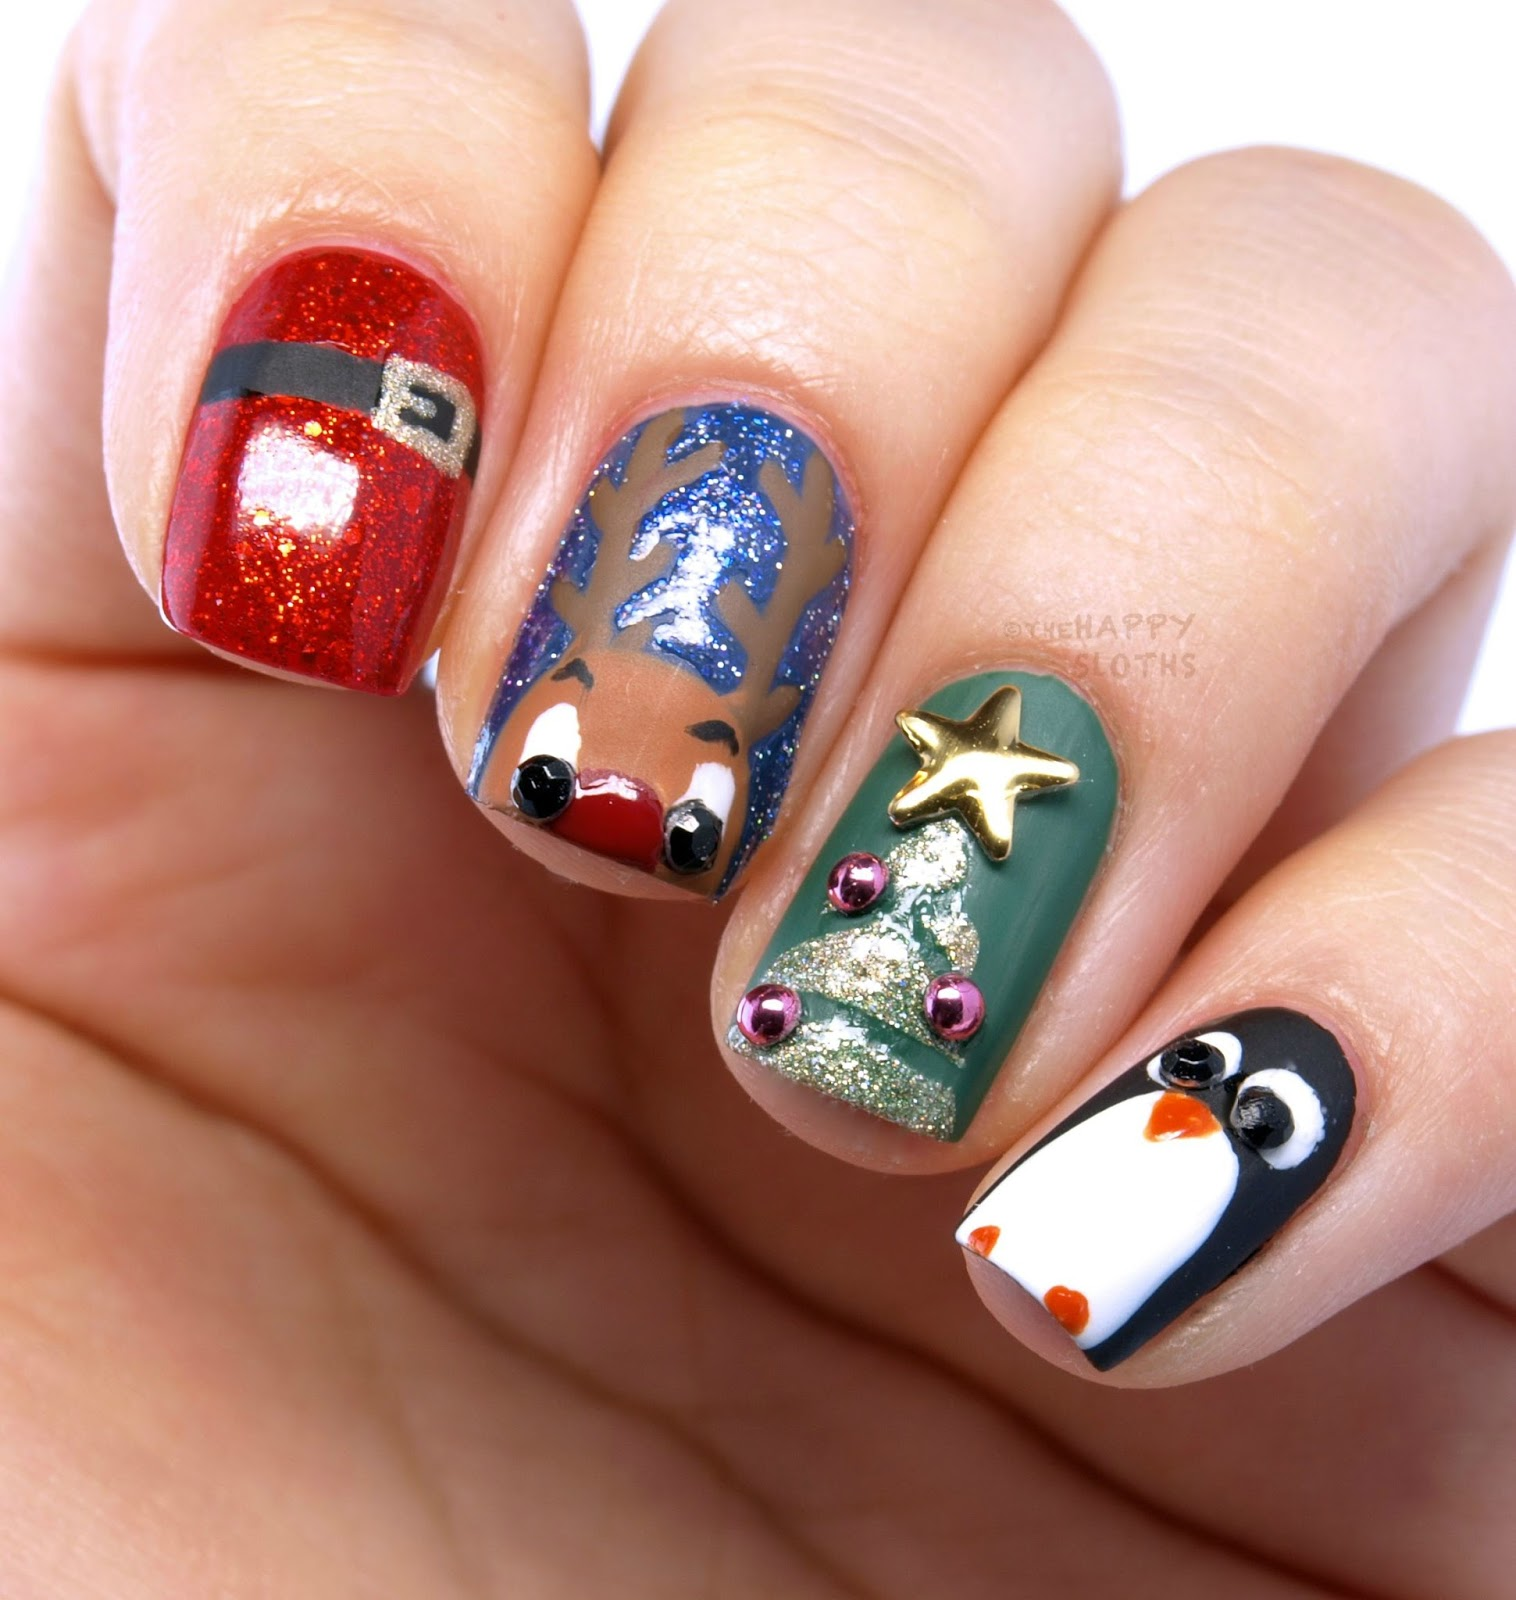 Christmas Penguin Nails: Christmas Manicure: Santa's Suit, Reindeer, Christmas Tree